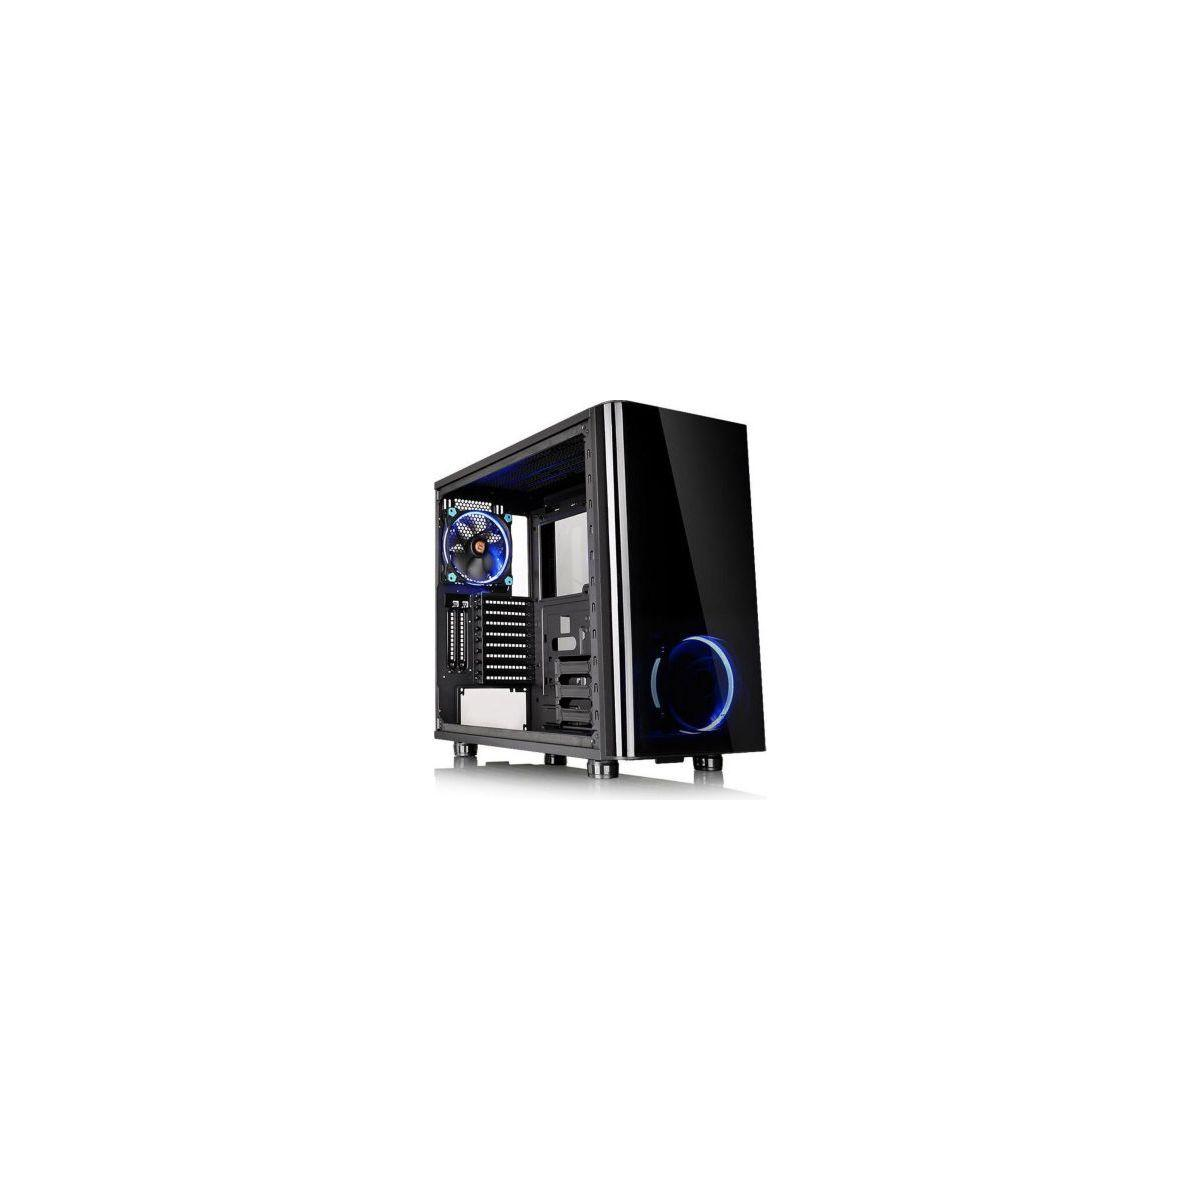 Bo�tier thermaltake view 31 tg riing ble - 2% de remise imm�diate avec le code : fete2 (photo)